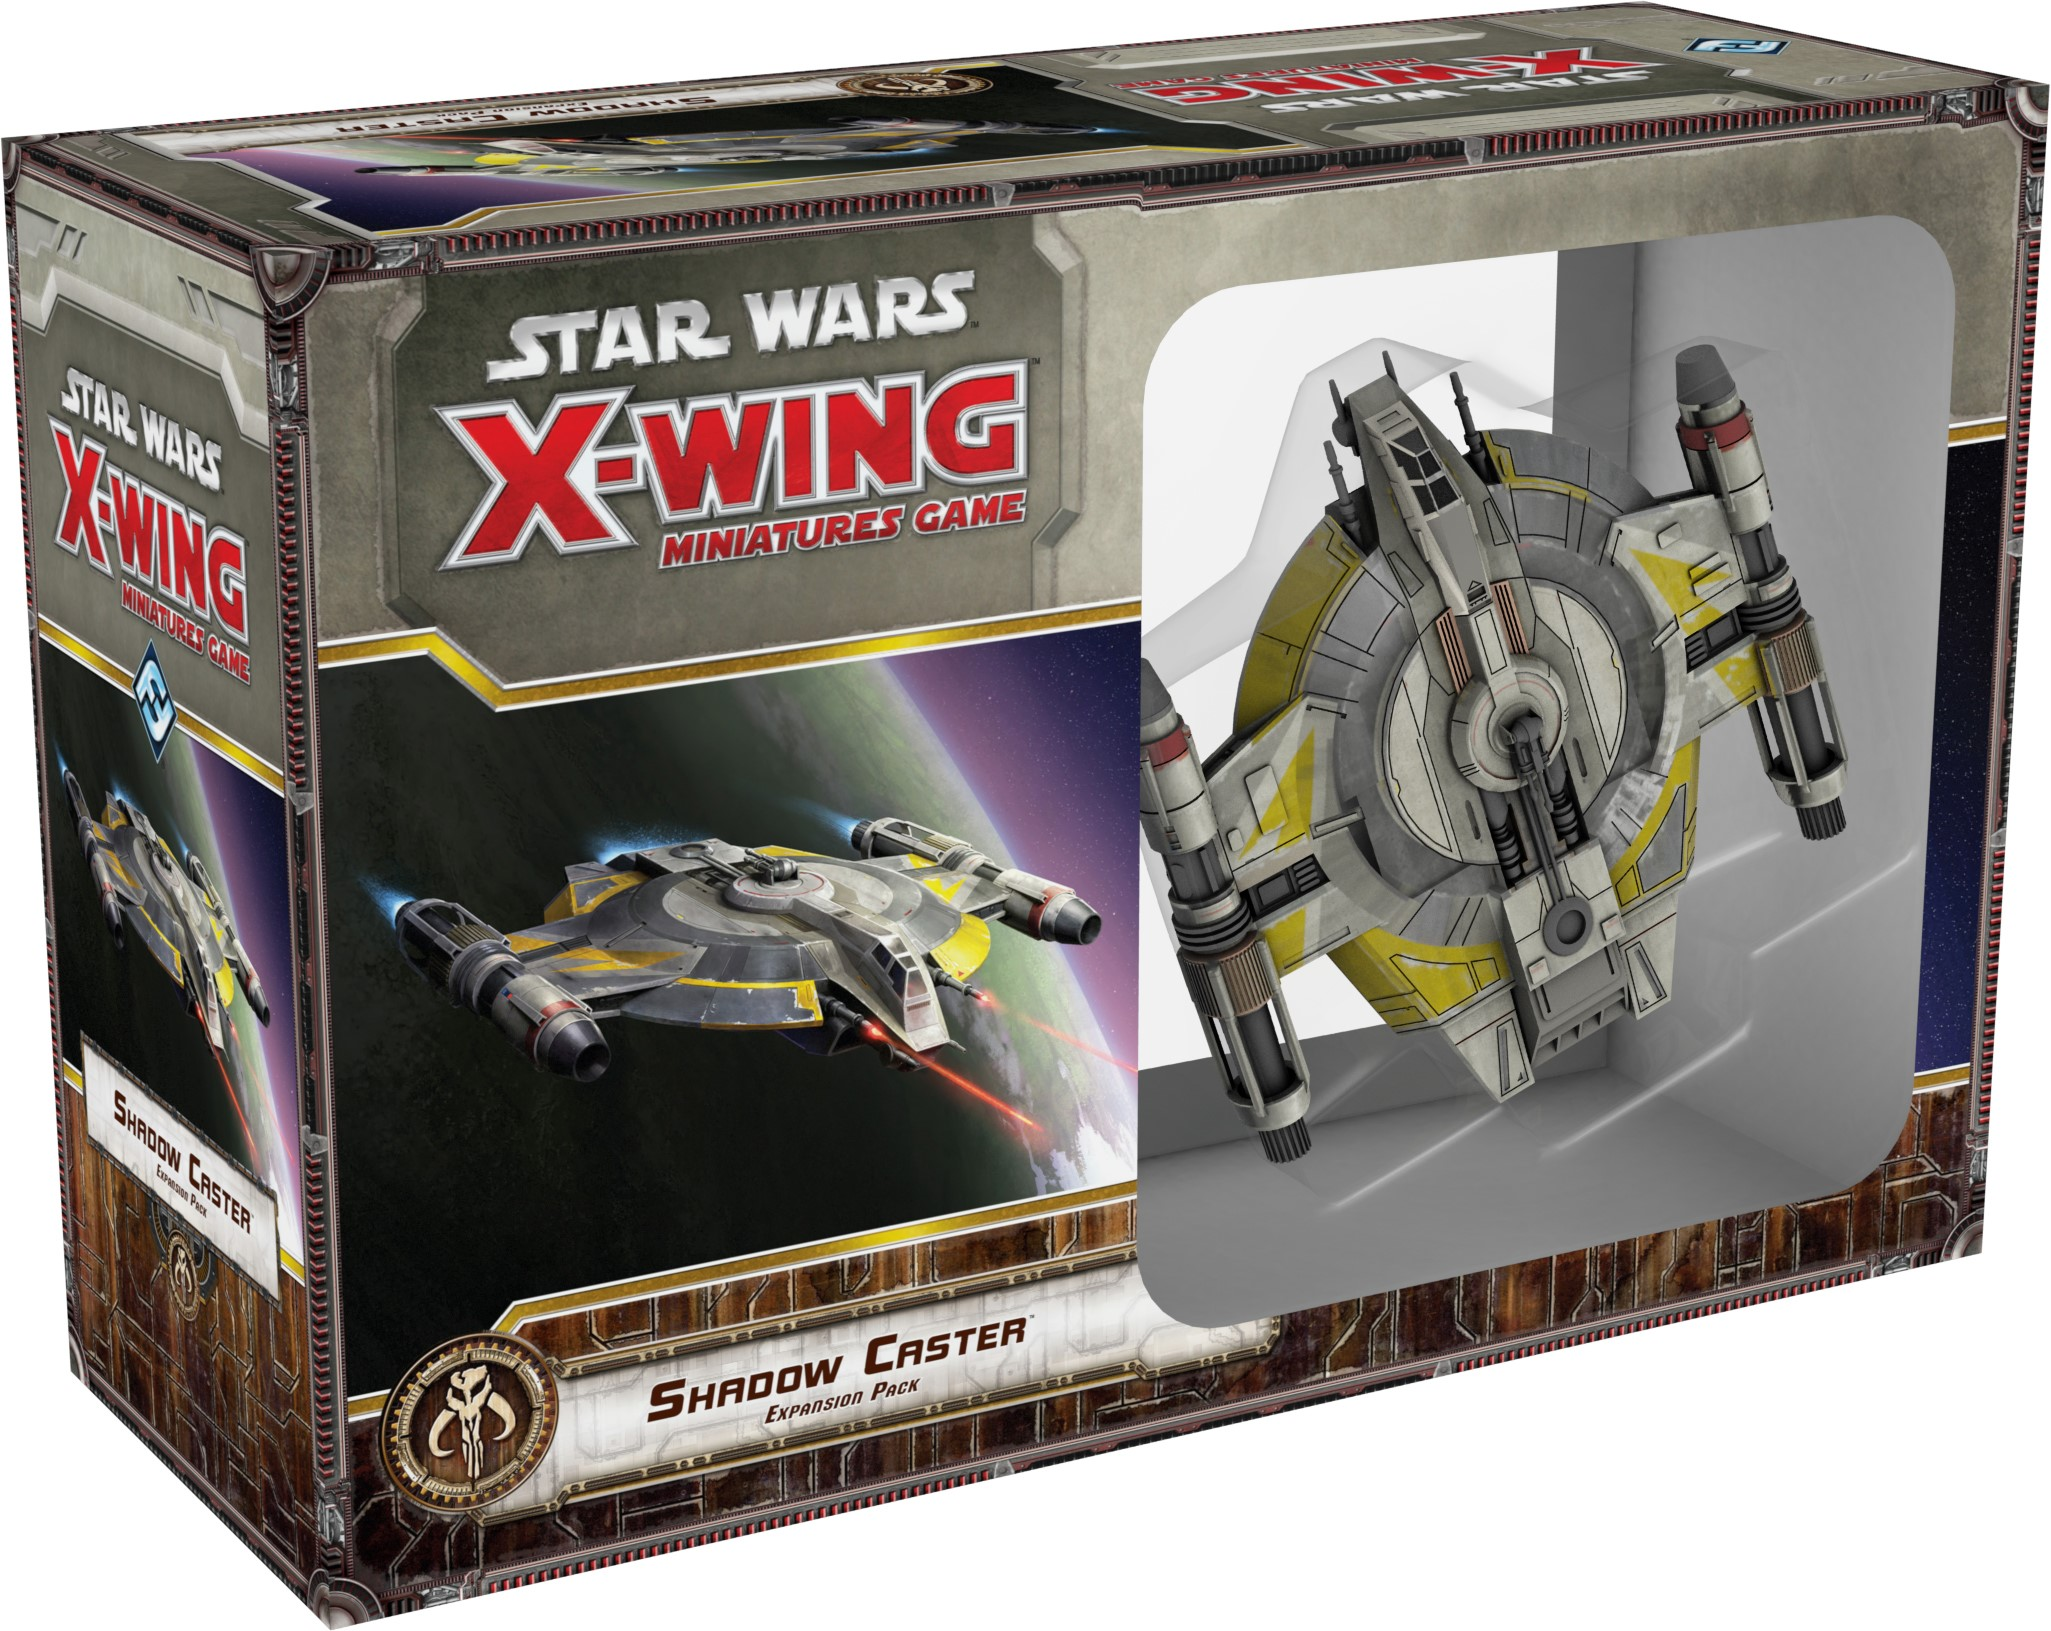 Star Wars X-Wing: Shadow Caster [SALE]